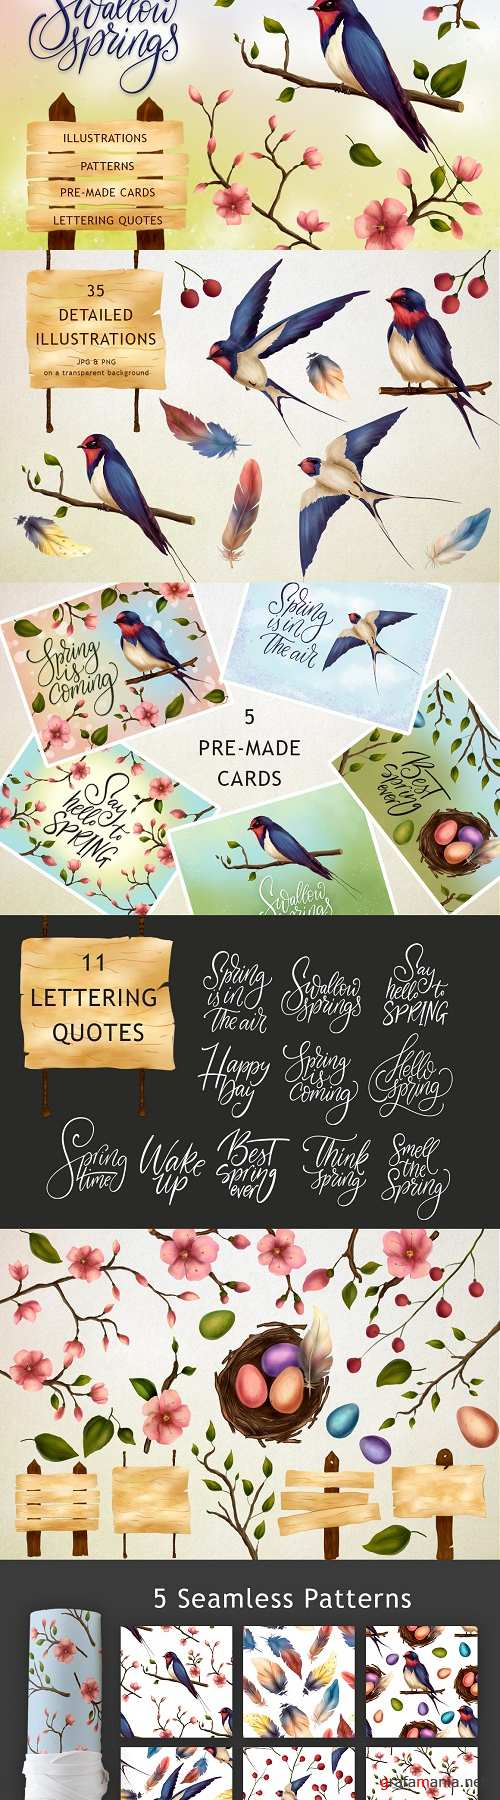 Swallow springs. Gentle graphic set - 3471724